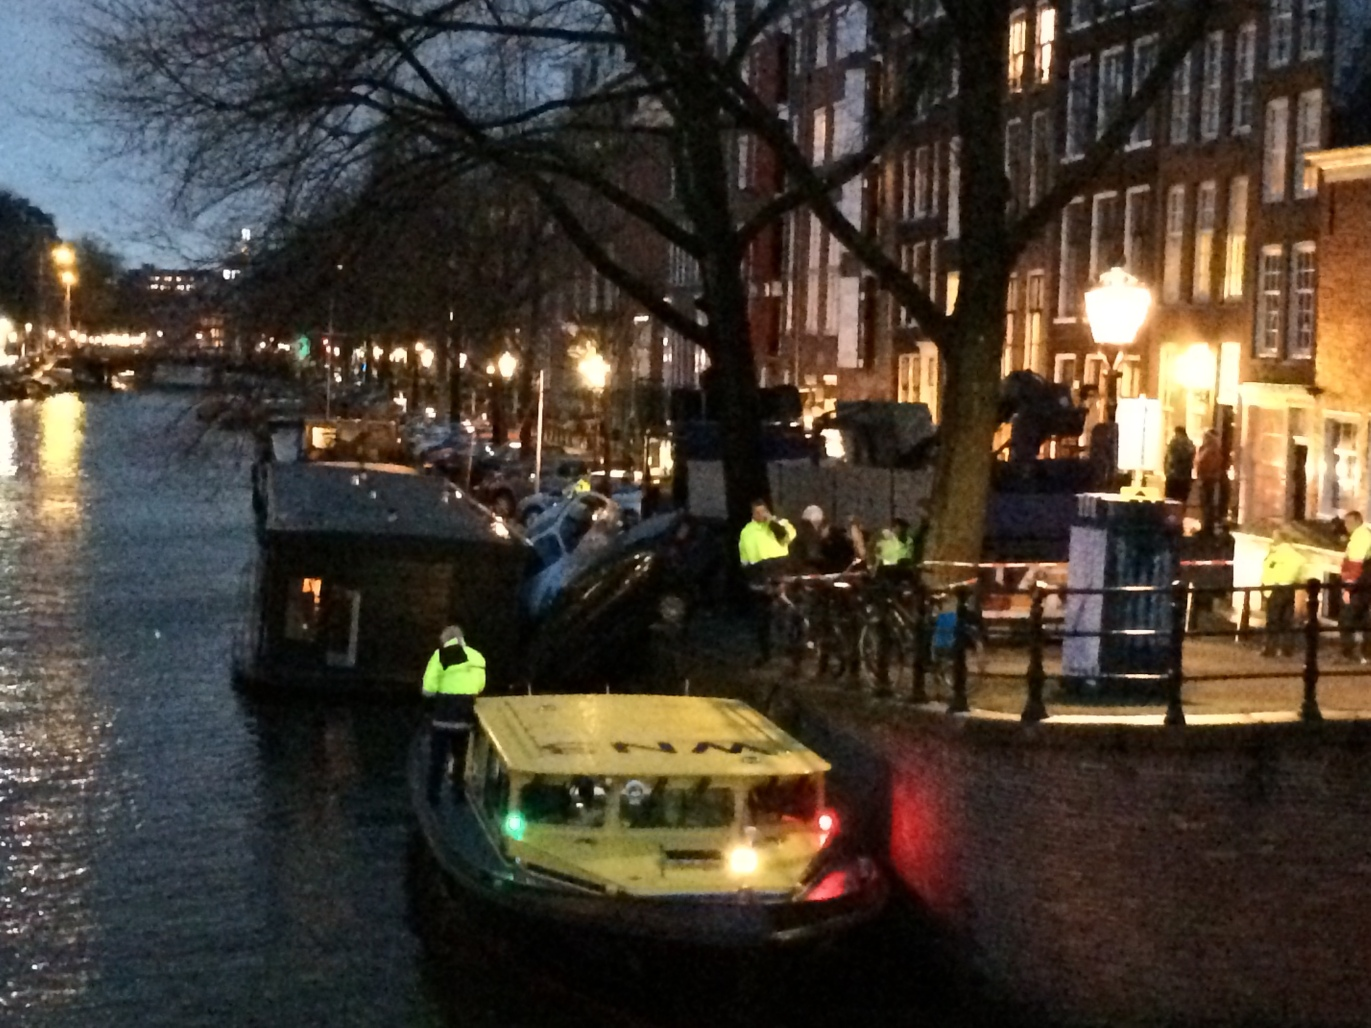 Daily Distraction: Dangerous Parking in Amsterdam